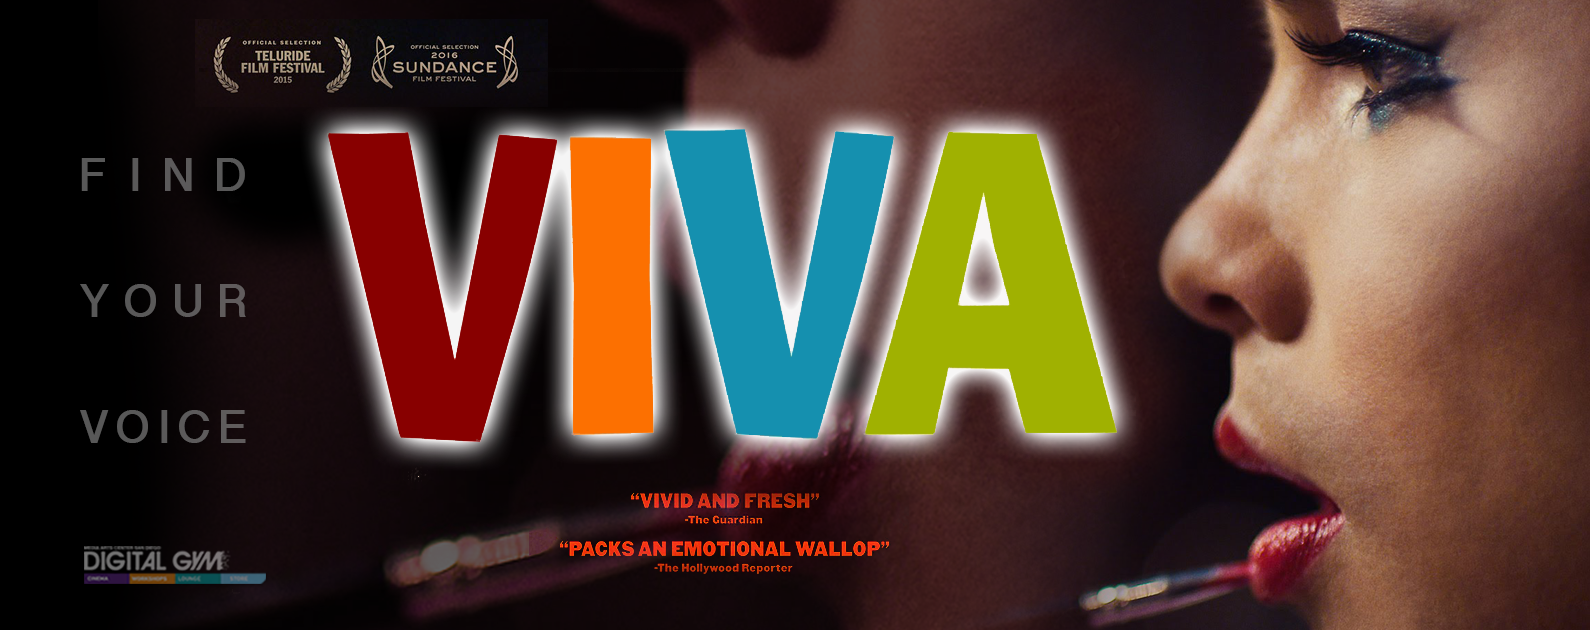 VIVA: Cuban LGBT Drama Returns to San Diego (June 10-16)